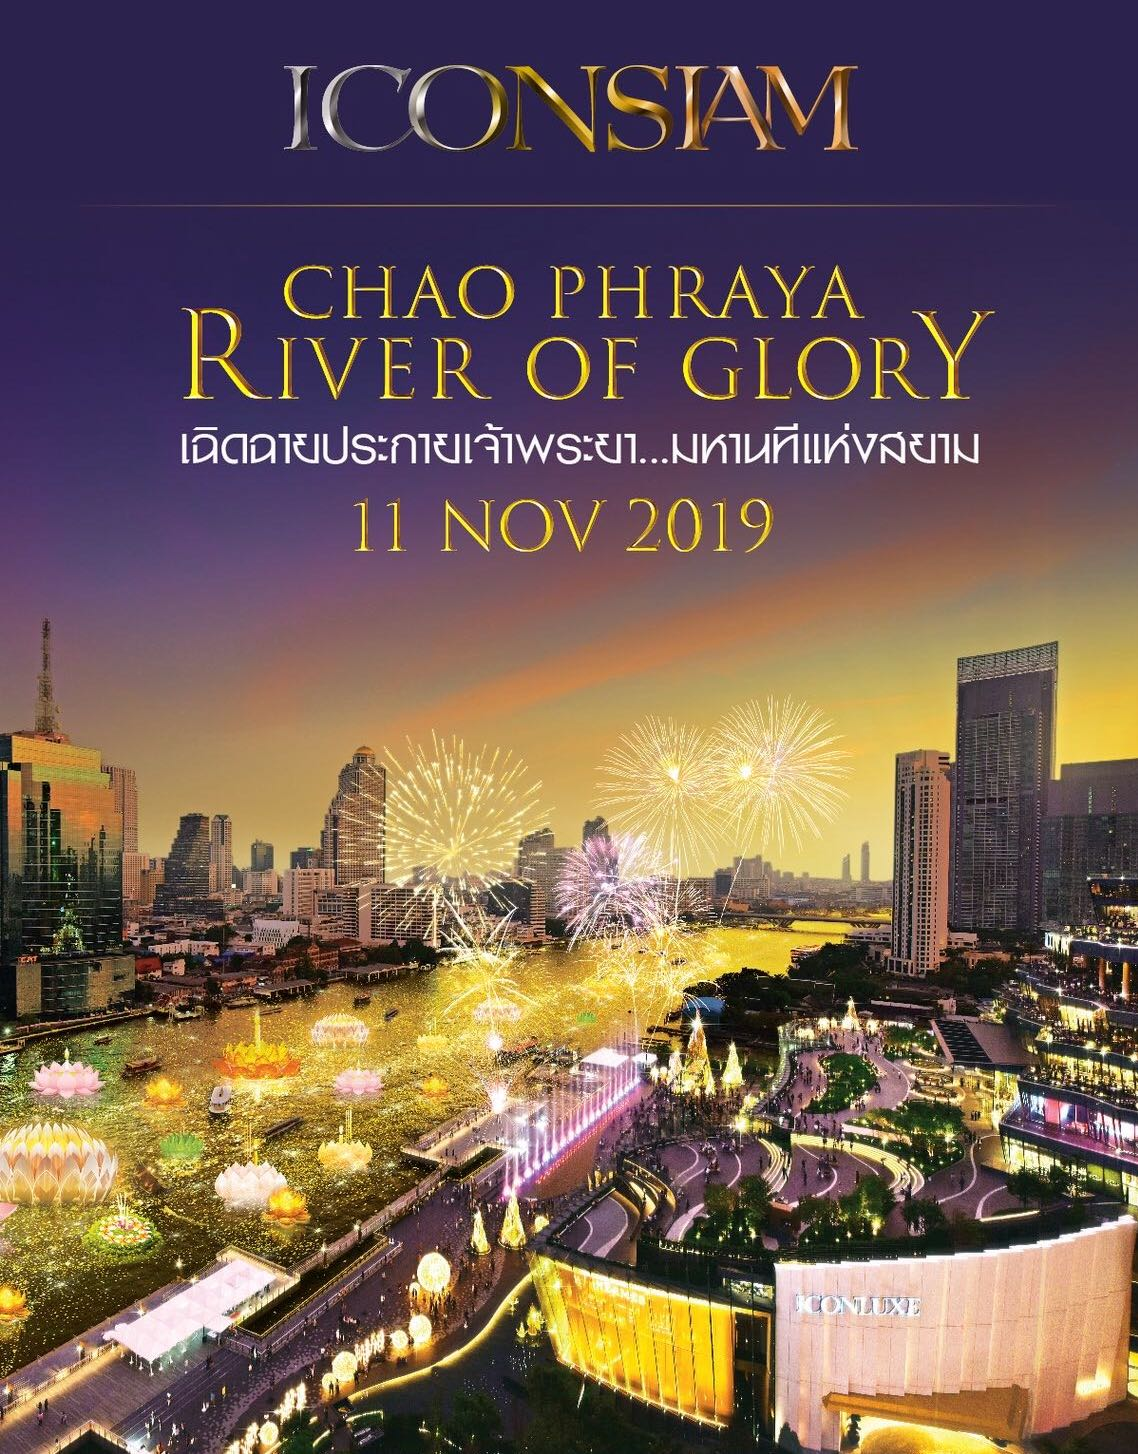 Iconsiam, ICONSIAM, Loy Krathong, Celebrate Loy Krathong, where to celebrate Loy krathong bangkok, bangkok events, Chao Phraya river, November events,